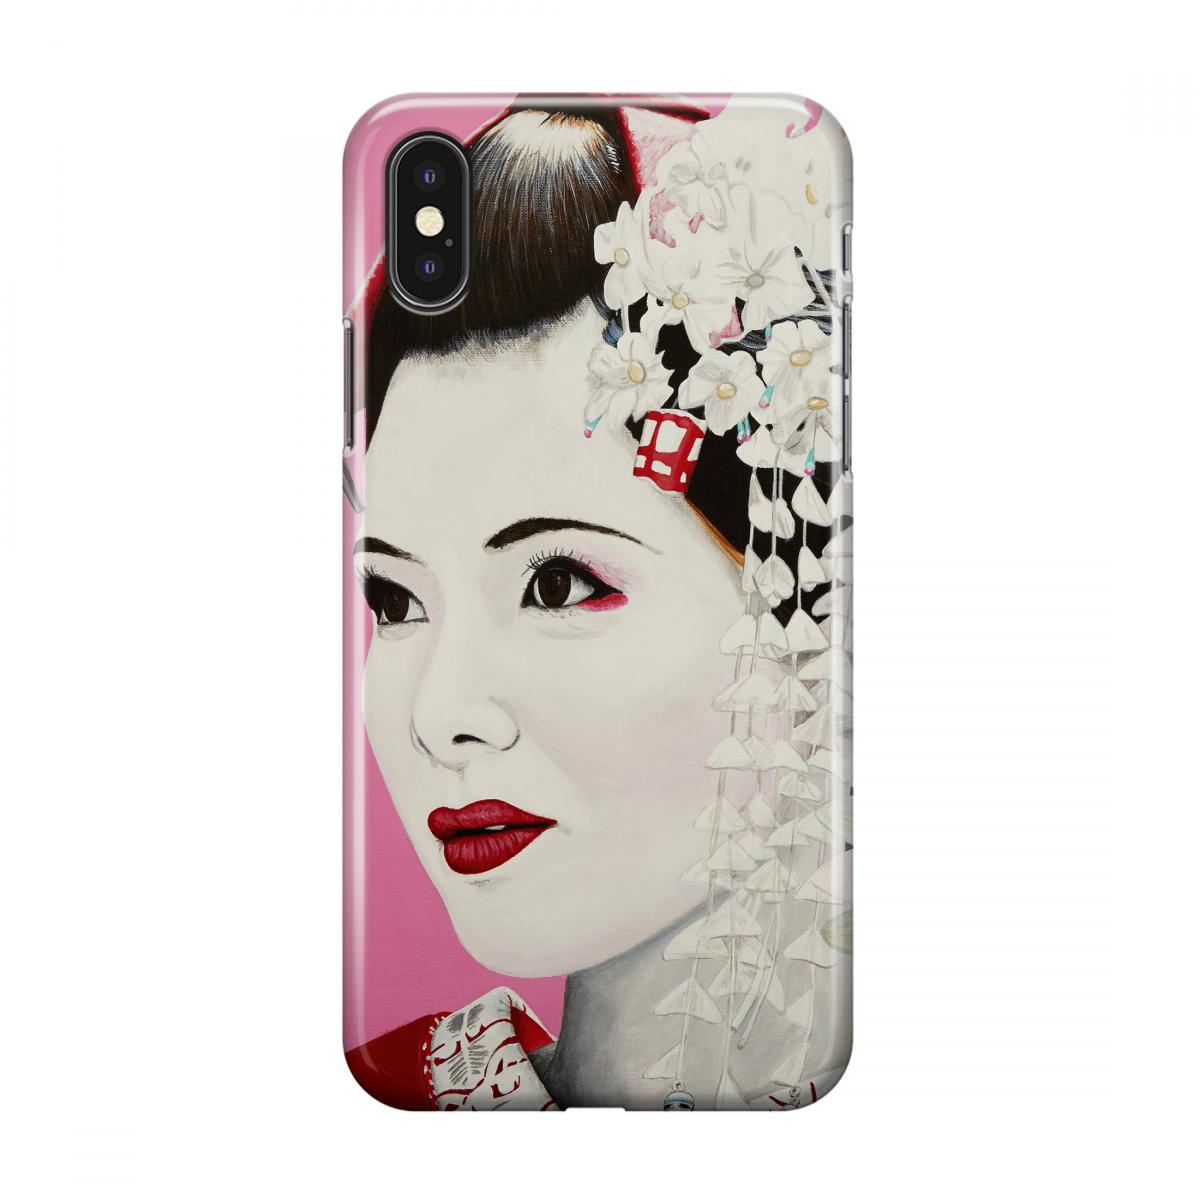 Christian Beijer Phone case Shorai wanai - Christian Beijer Arts